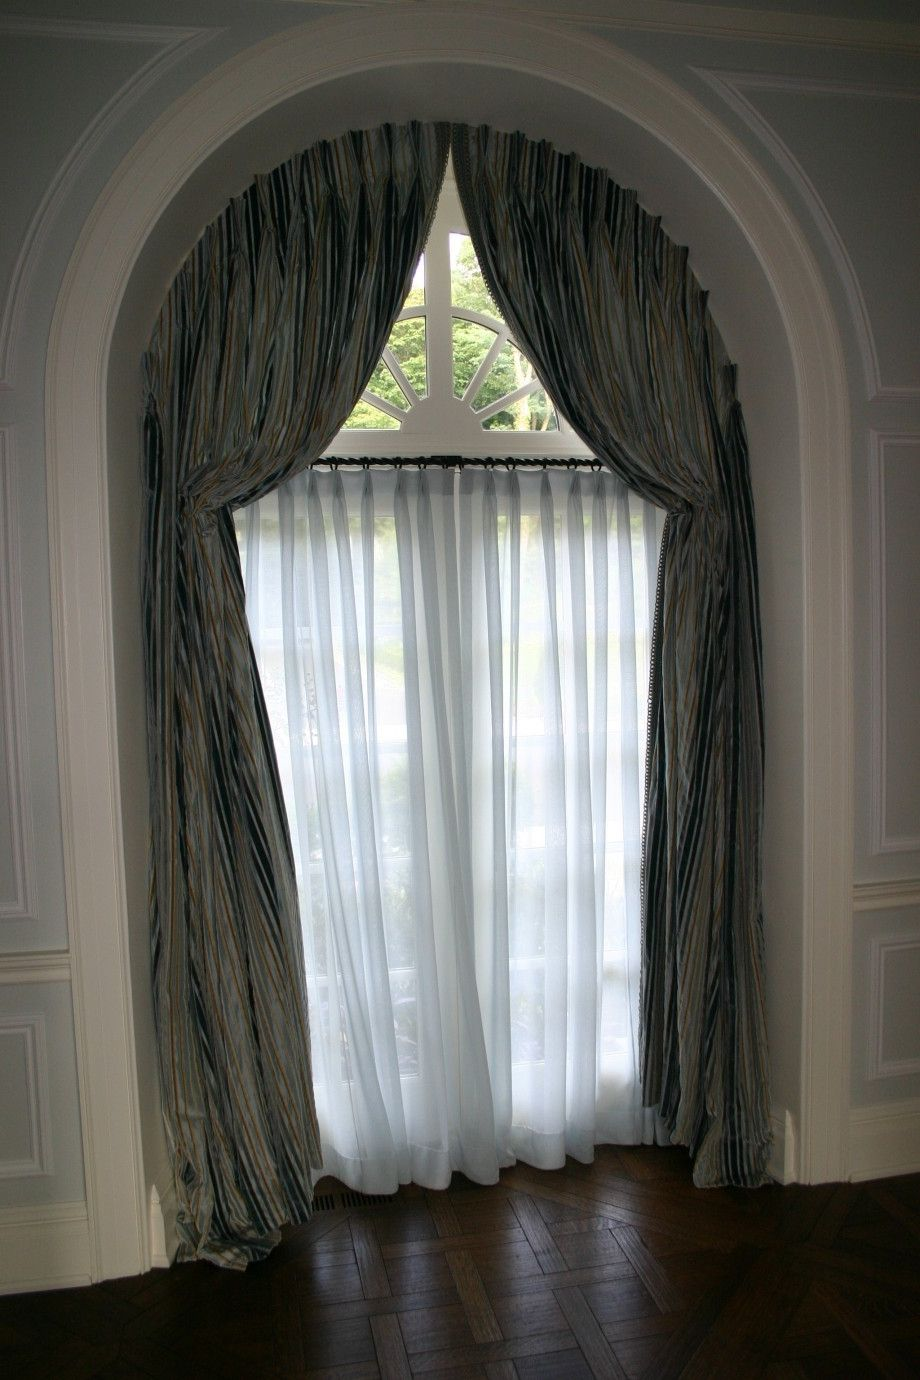 Home Designing Ideas Www Beautyhouzz Co Curtains For Arched Windows Arched Window Treatments Arched Window Coverings